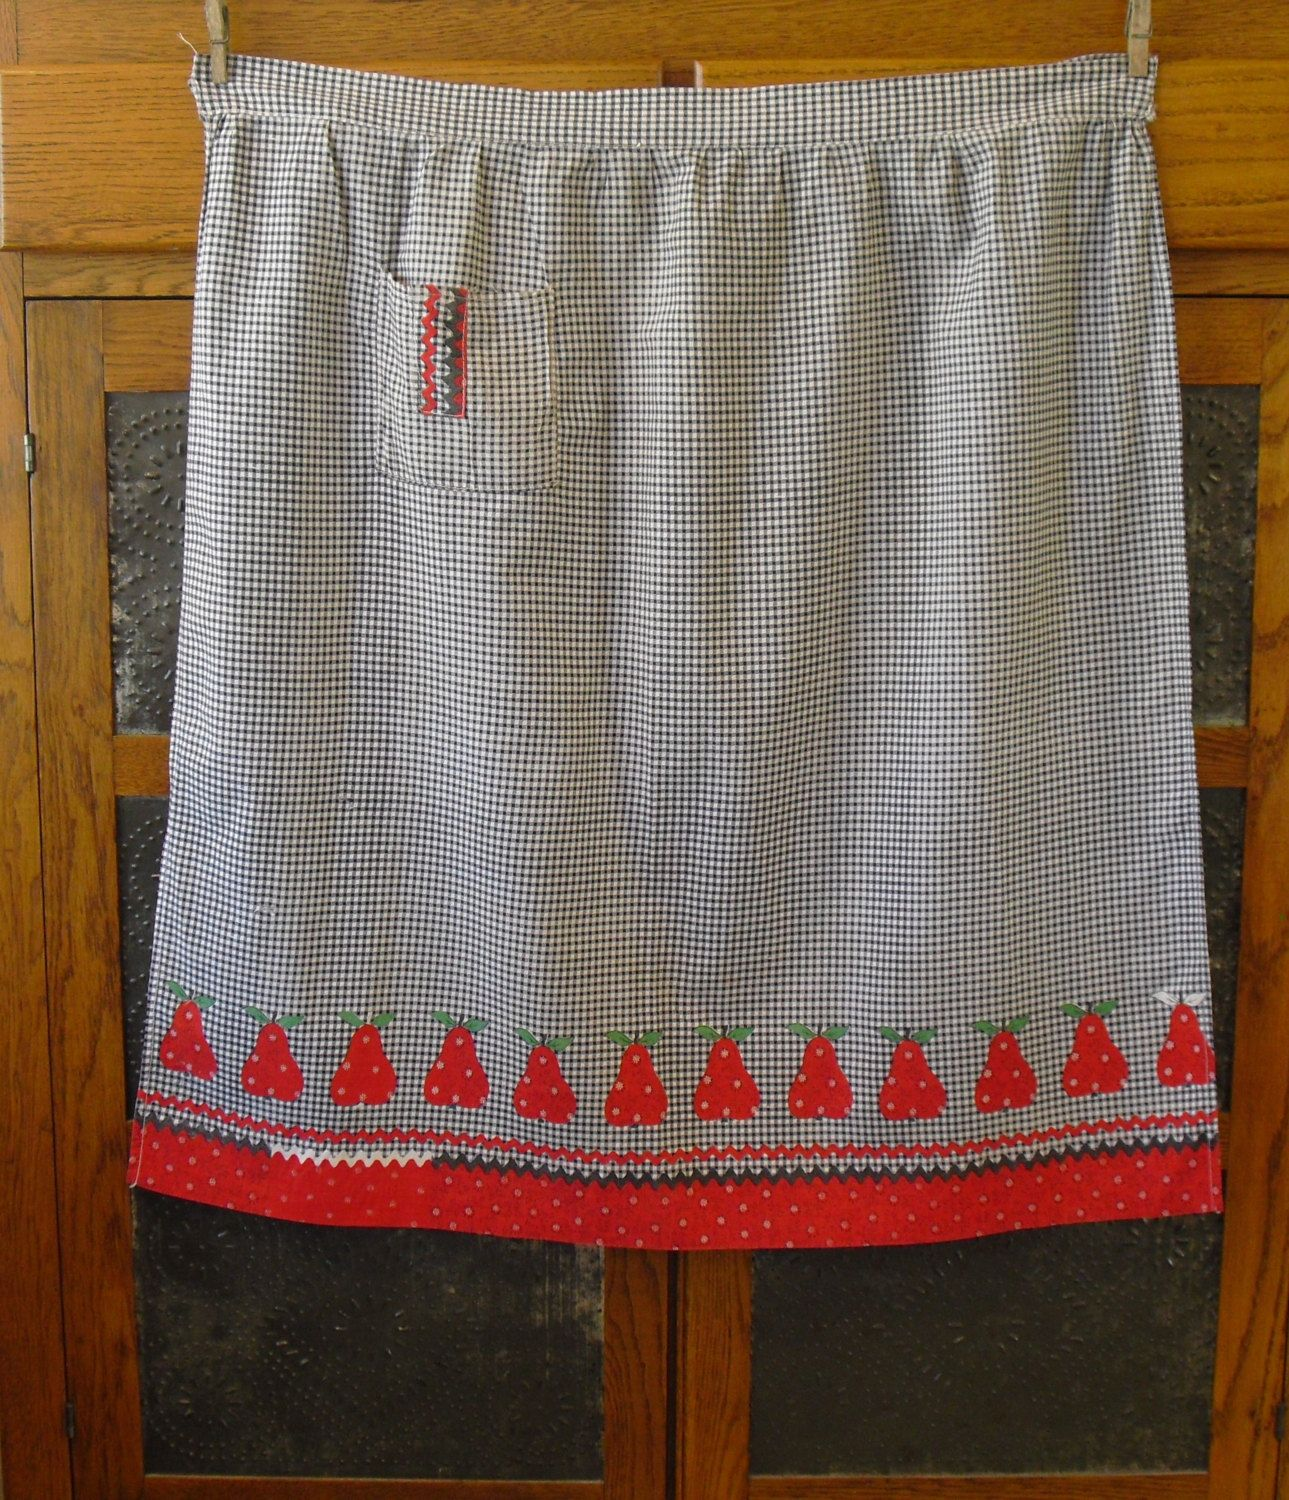 White half apron with pockets - Vintage Black And White Gingham Half Apron With Red Pears Flat Waist Pocket